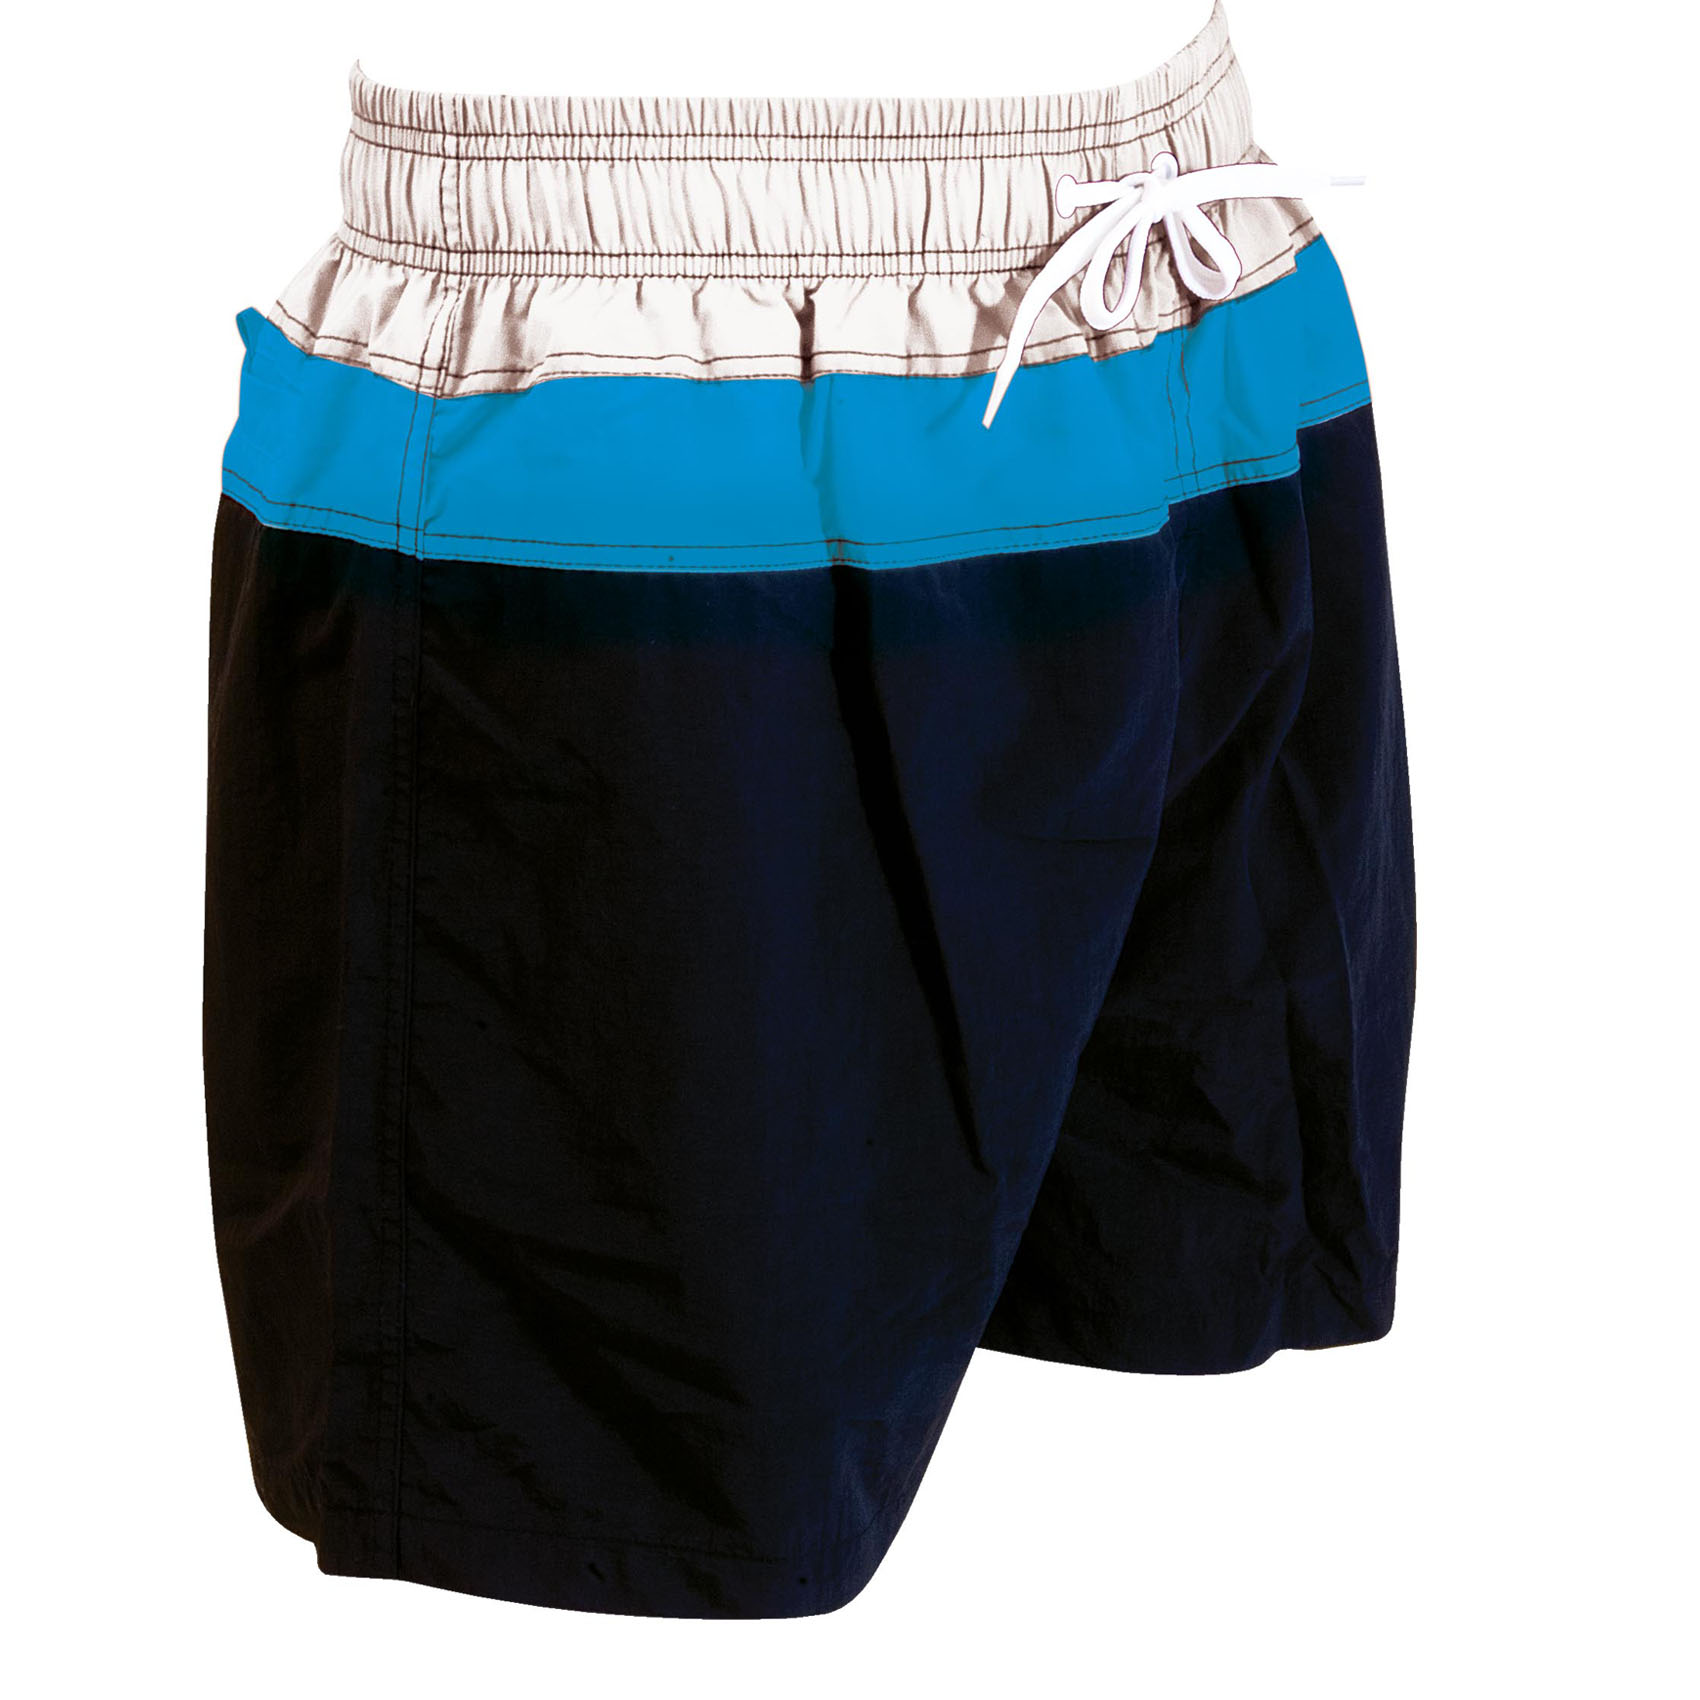 Zoggs Muriwai 17 inch Shorts - Black/Blue, S